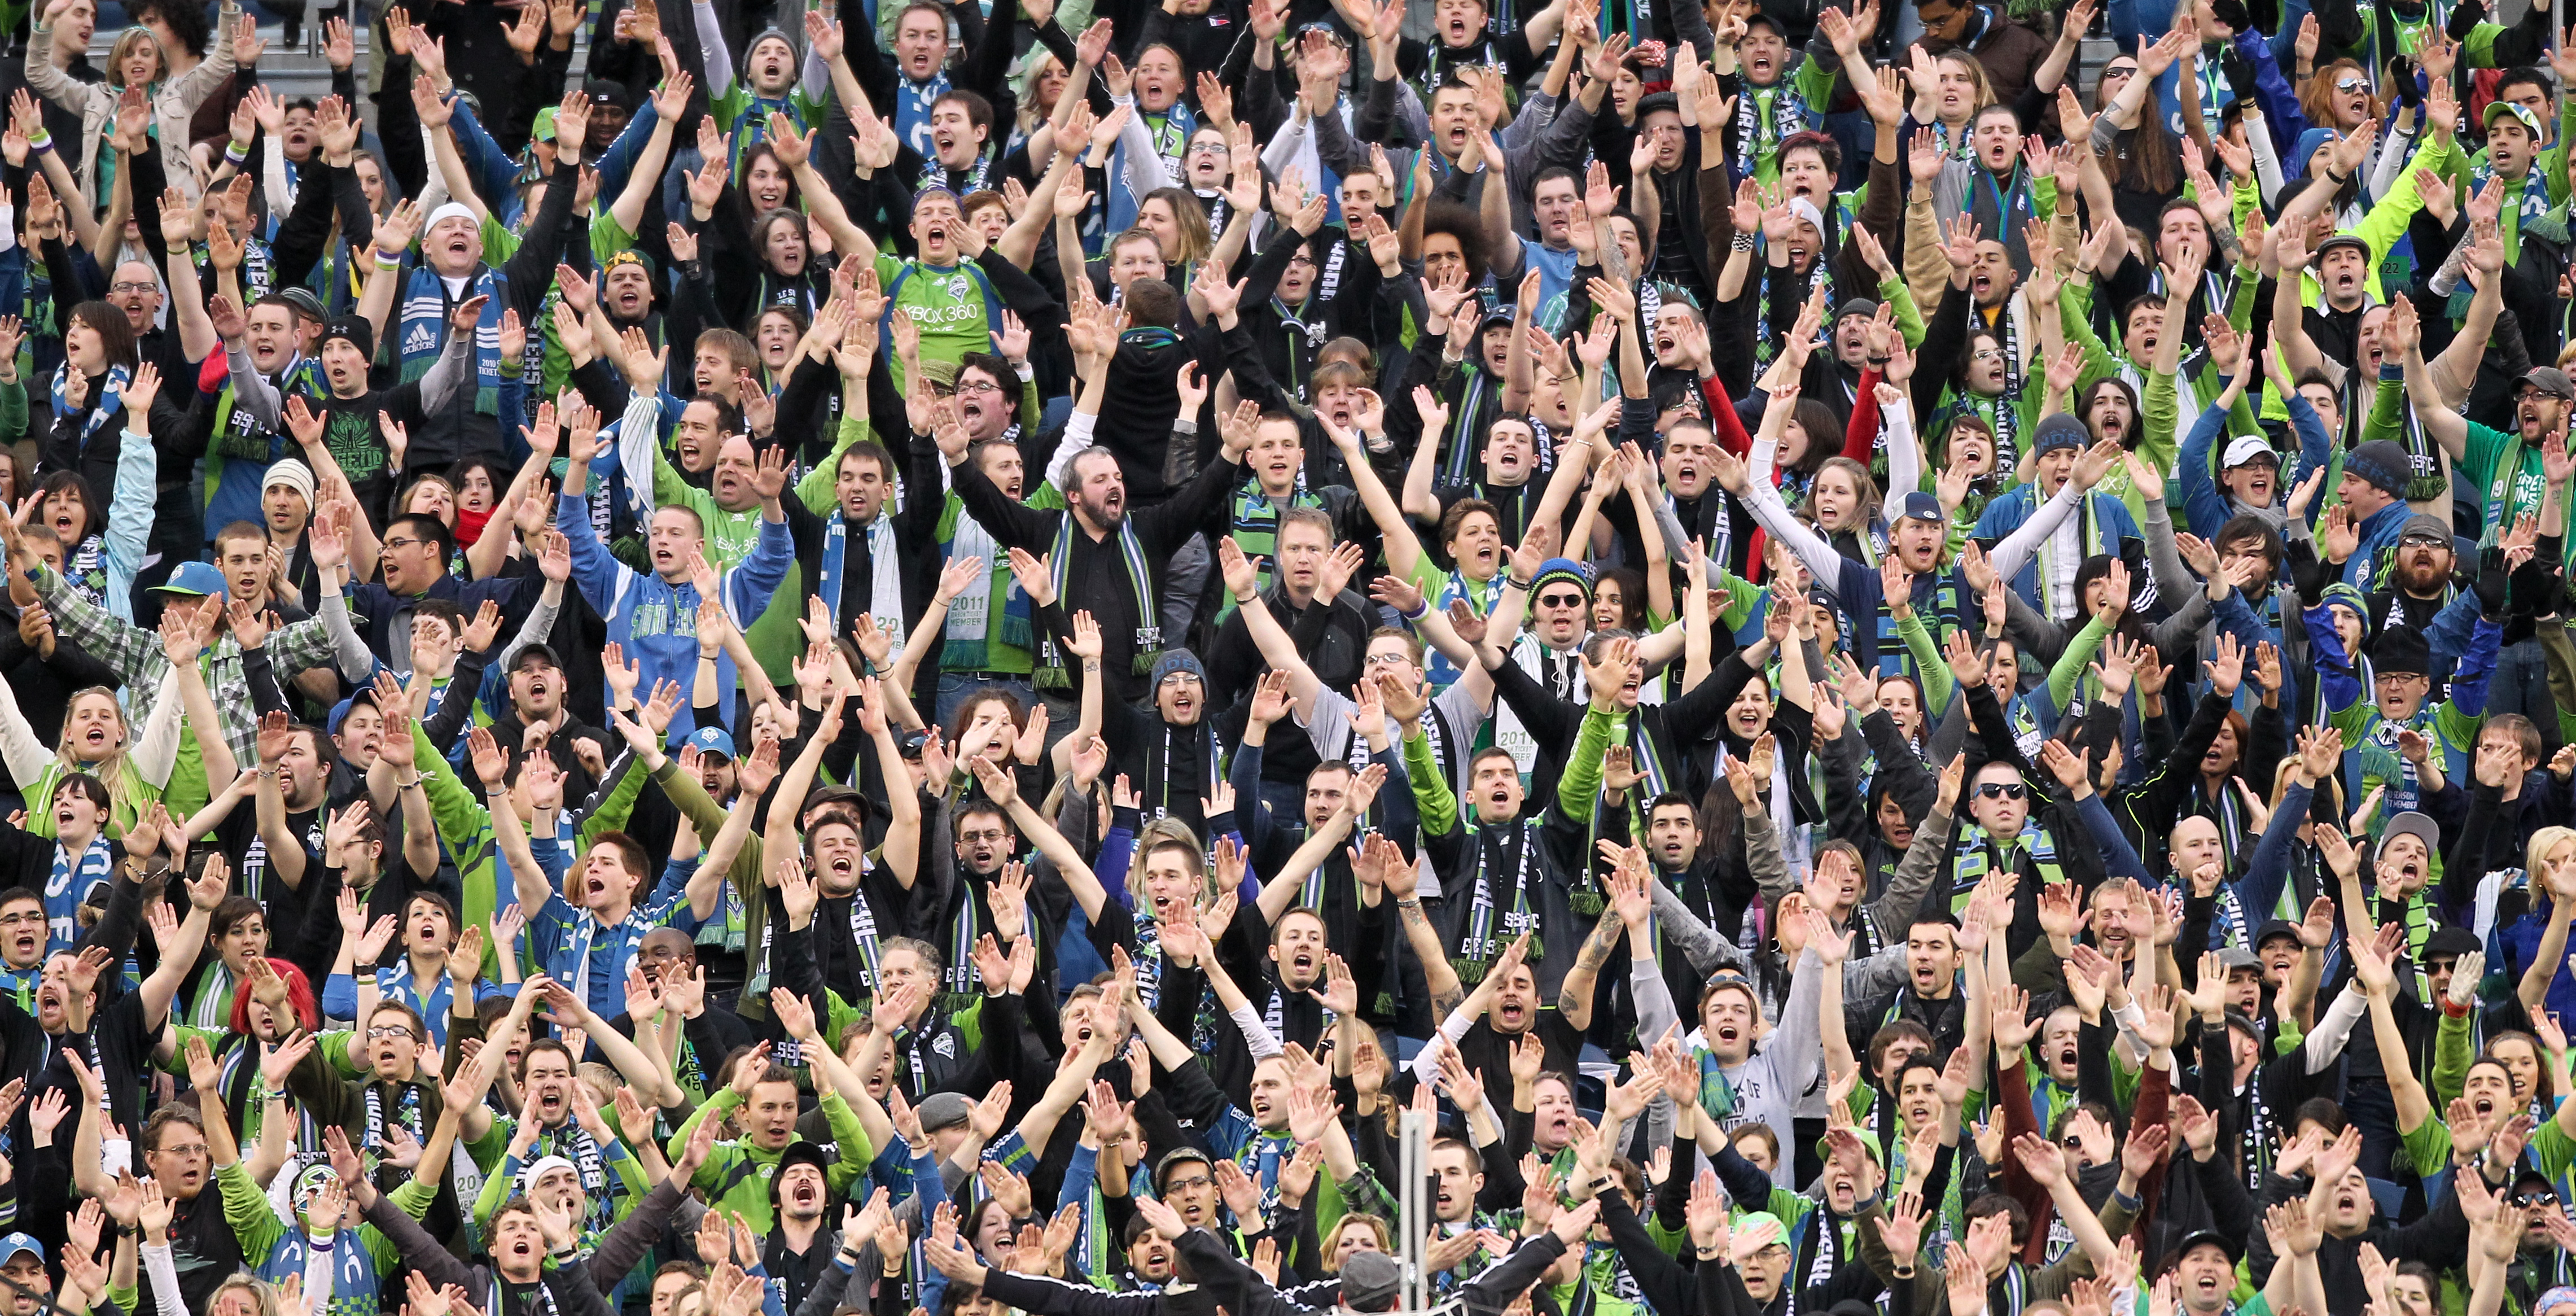 SEATTLE, WA - MARCH 25:  Fans of the Seattle Sounders FC cheer during the game against the Houston Dynamo at Qwest Field on March 25, 2011 in Seattle, Washington. (Photo by Otto Greule Jr/Getty Images)